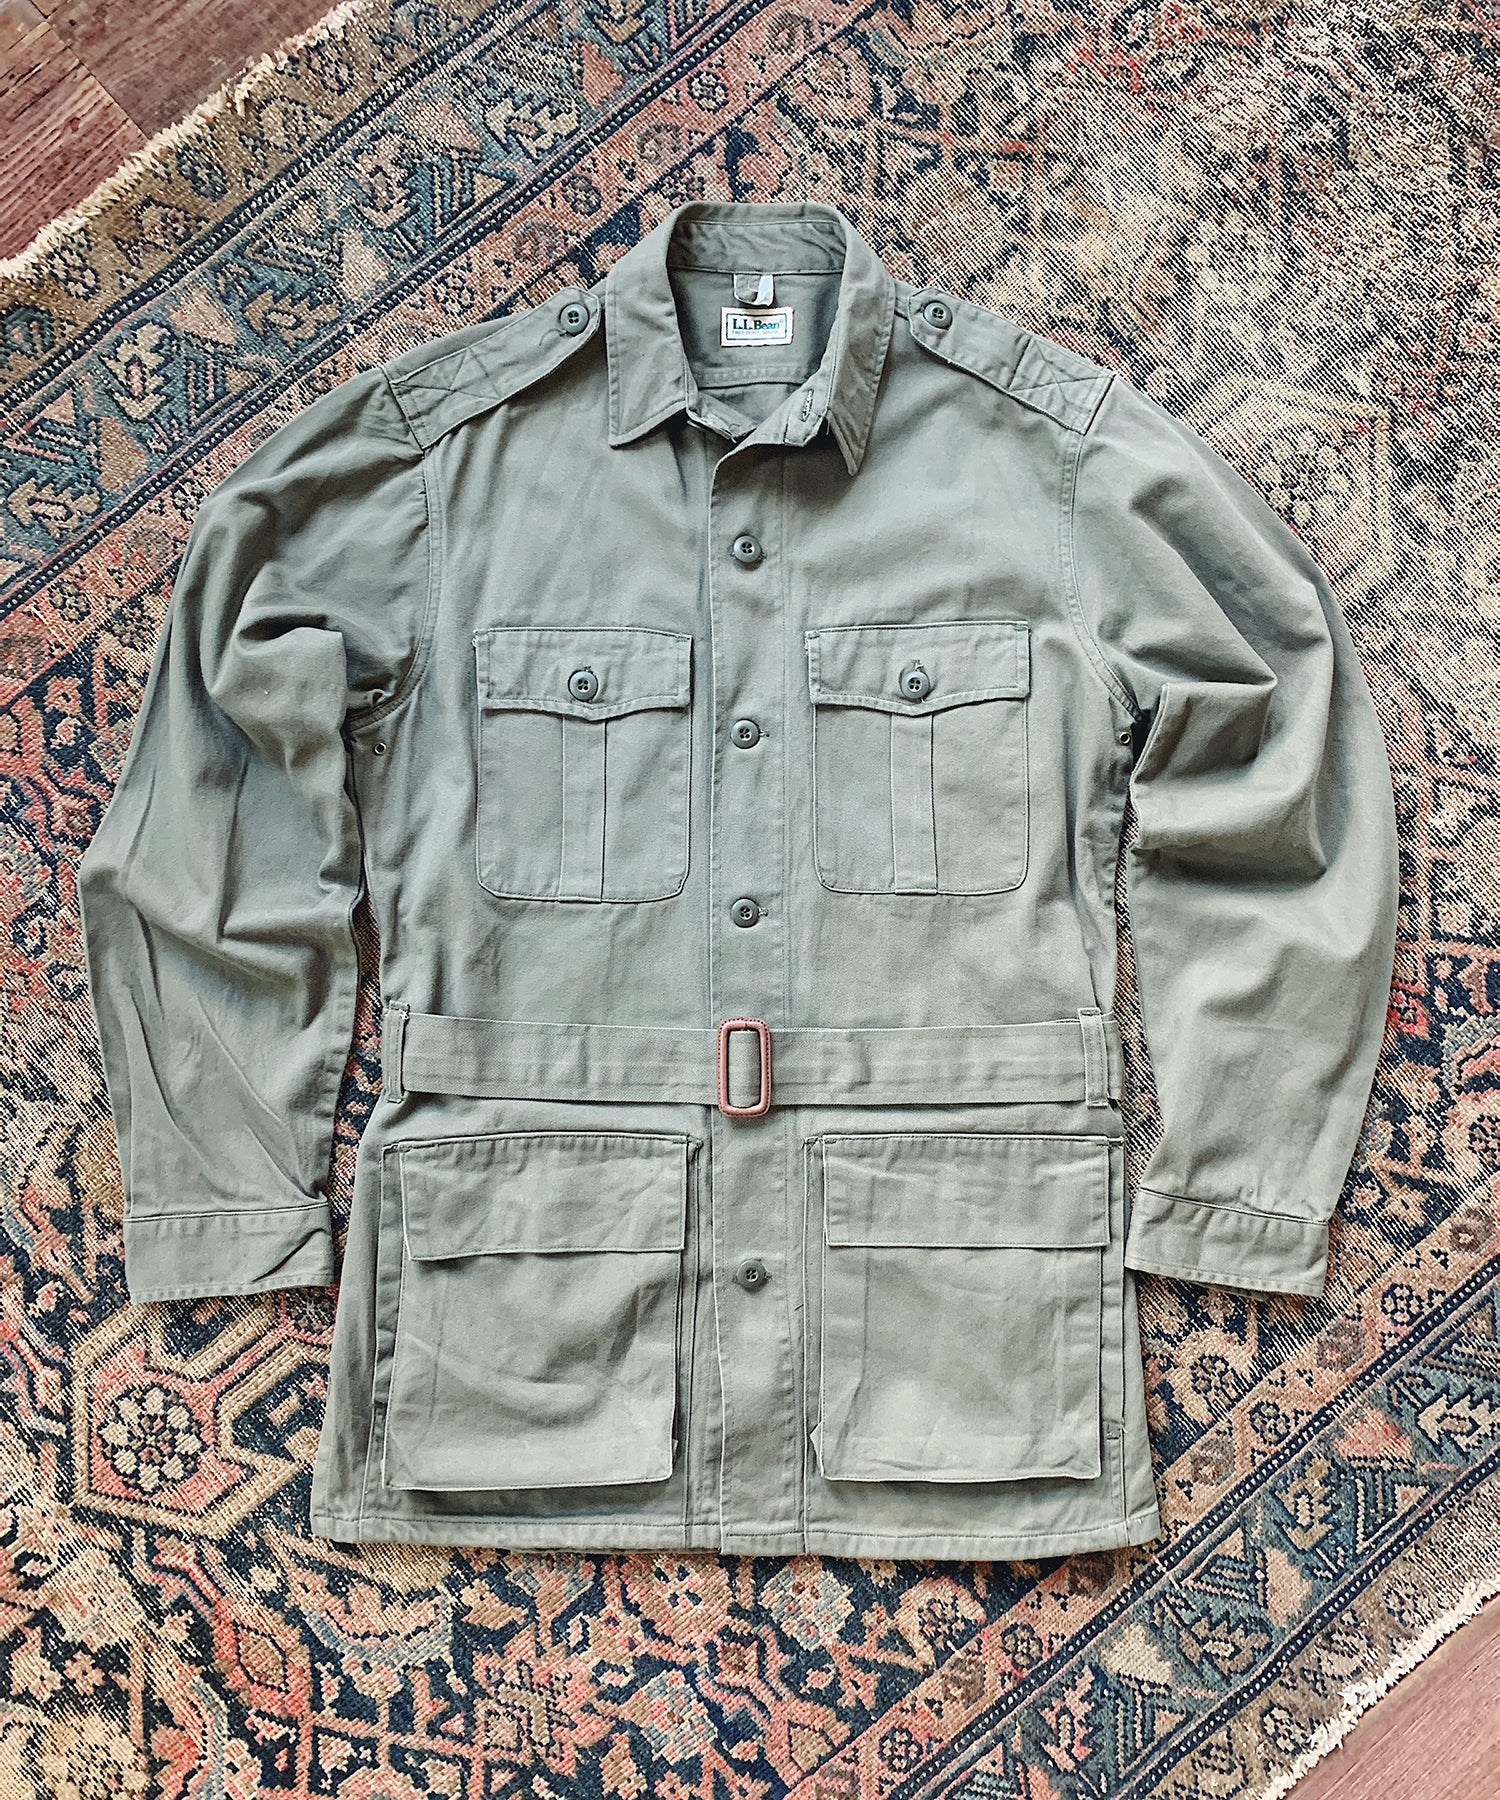 Item #23 - Todd Snyder x Wooden Sleepers 1980's Safari Jacket in Olive